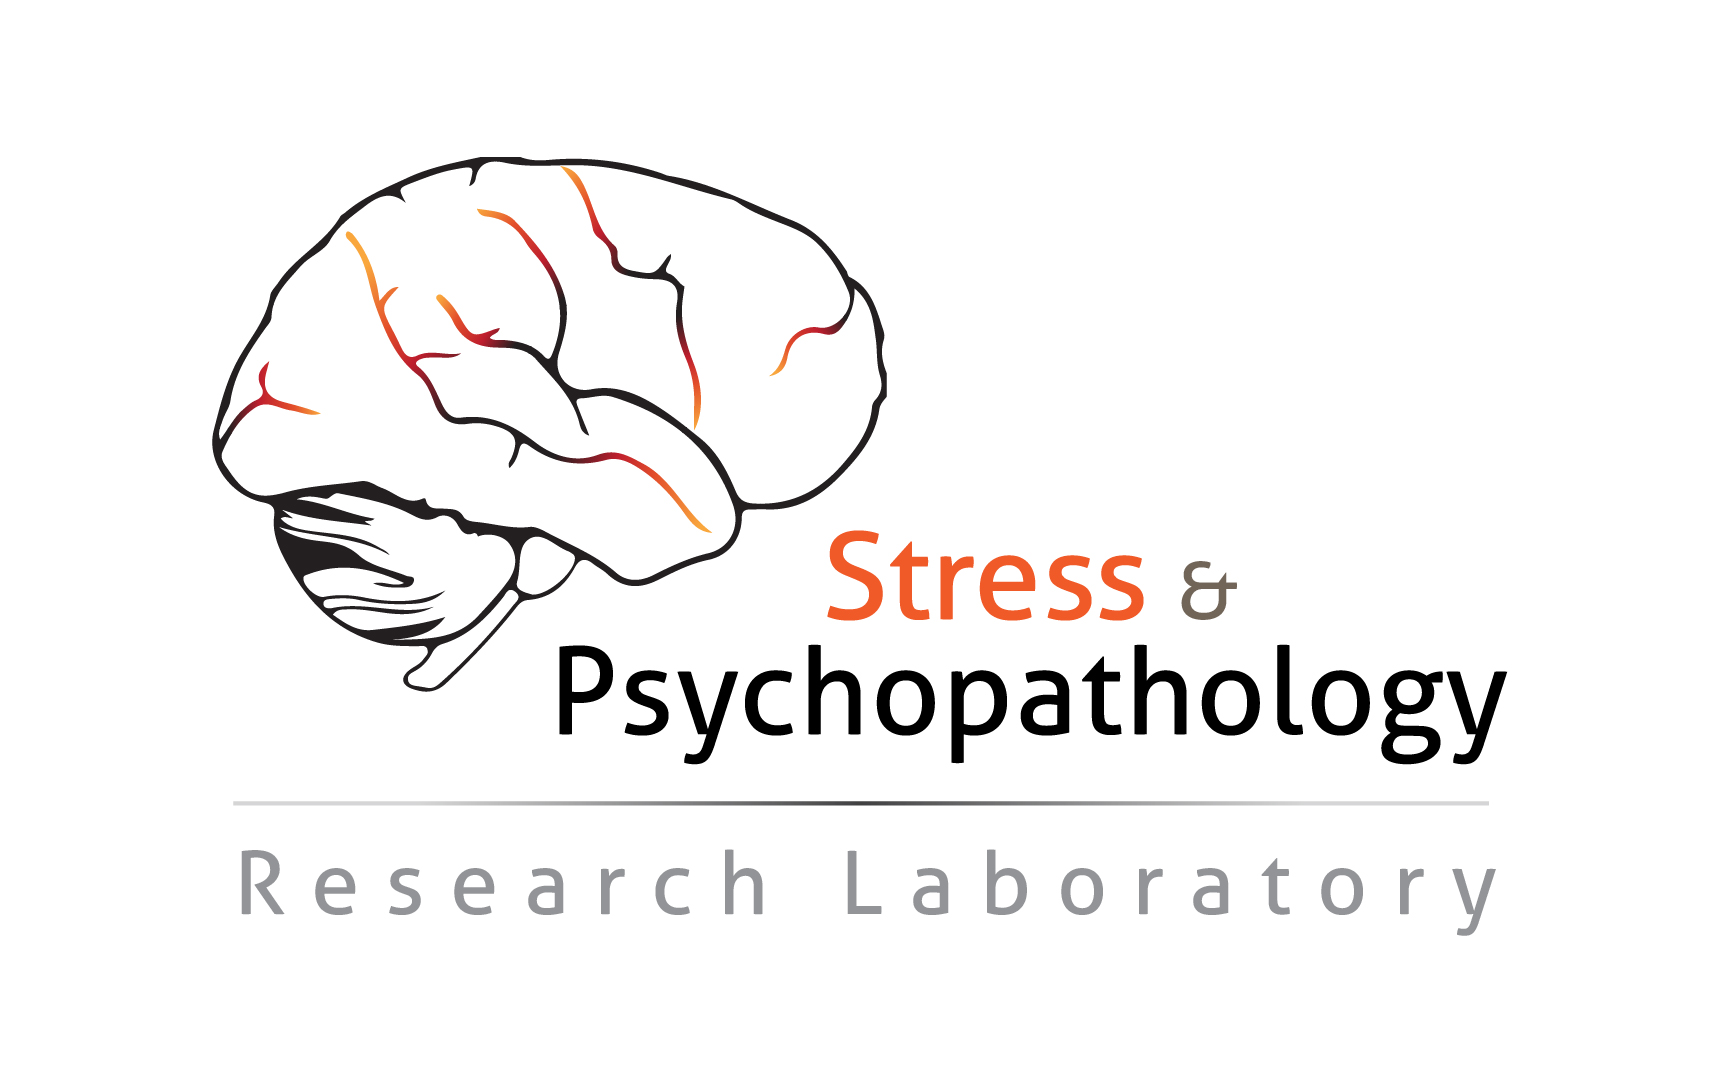 Stress & Psychopathology Research Lab | PI: Dr. Roee Admon